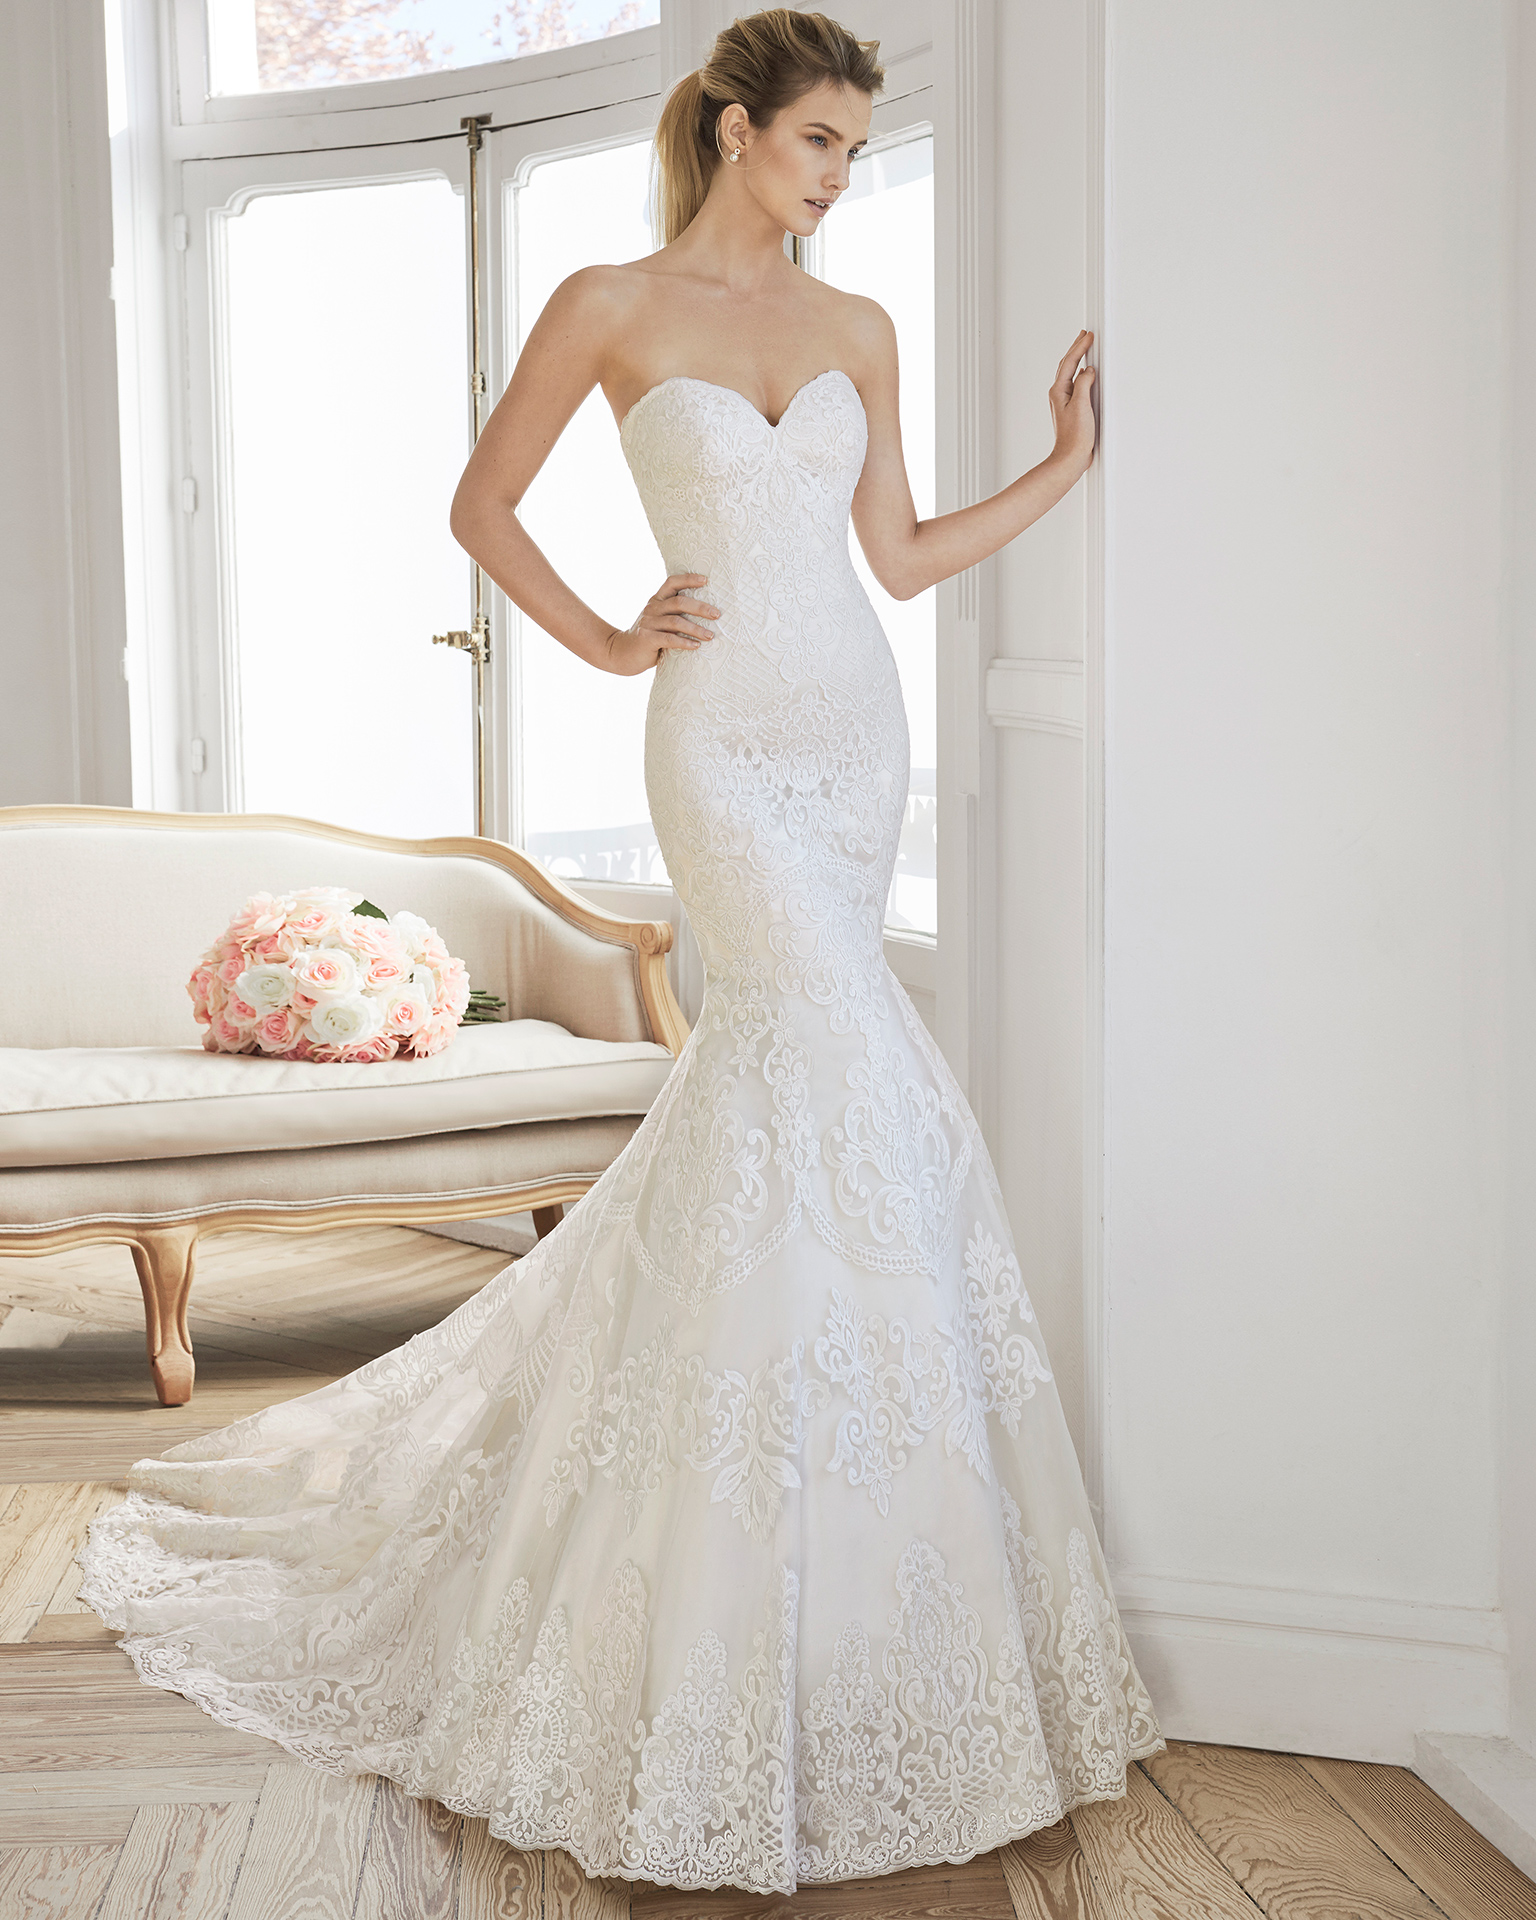 Mermaid-style lace wedding dress. Strapless neckline and V-back. Available in ivory and natural/champagne. 2019 AIRE BARCELONA Collection.